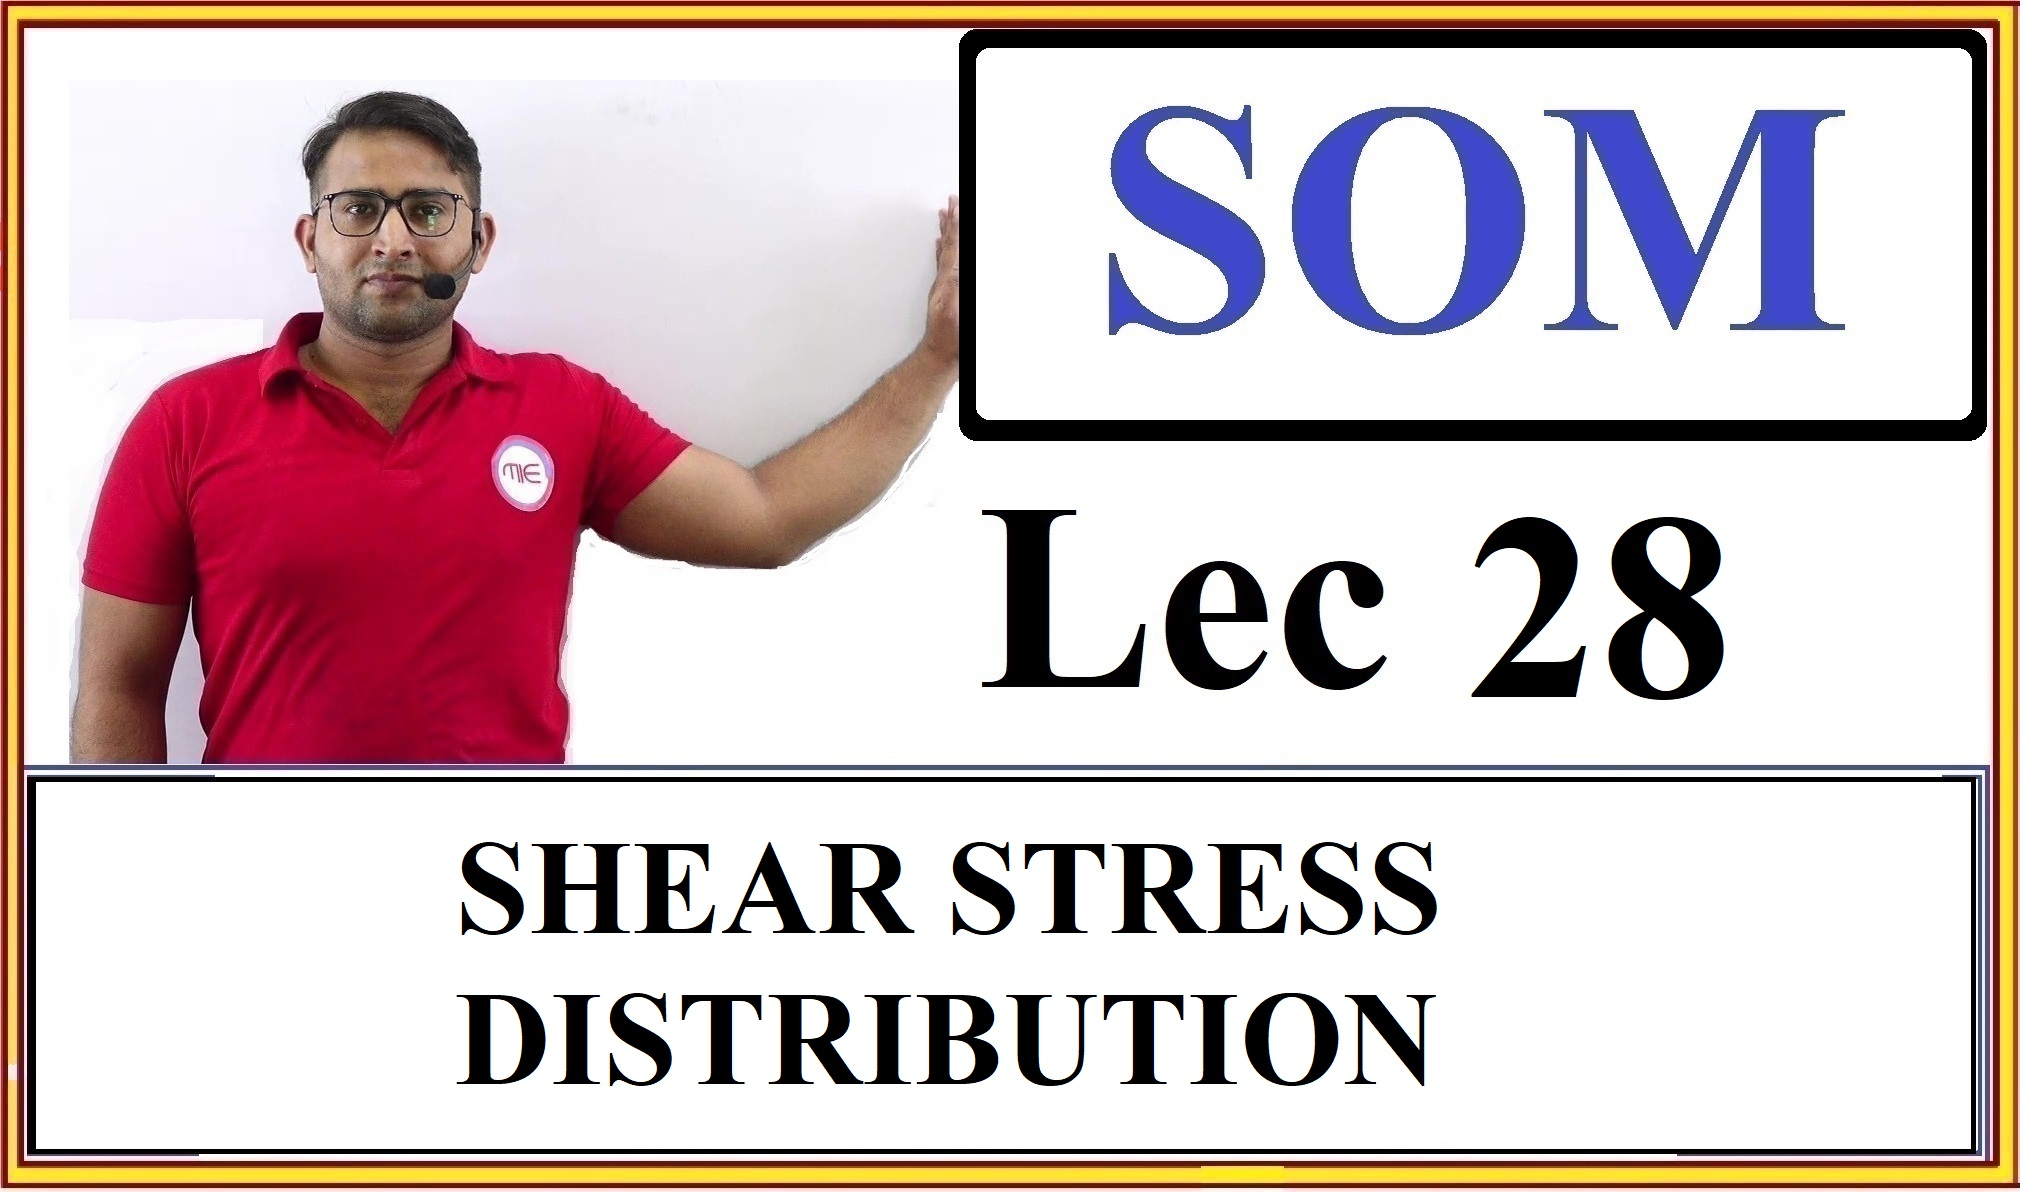 Lec 28 Shear Stress Distribution in a beam